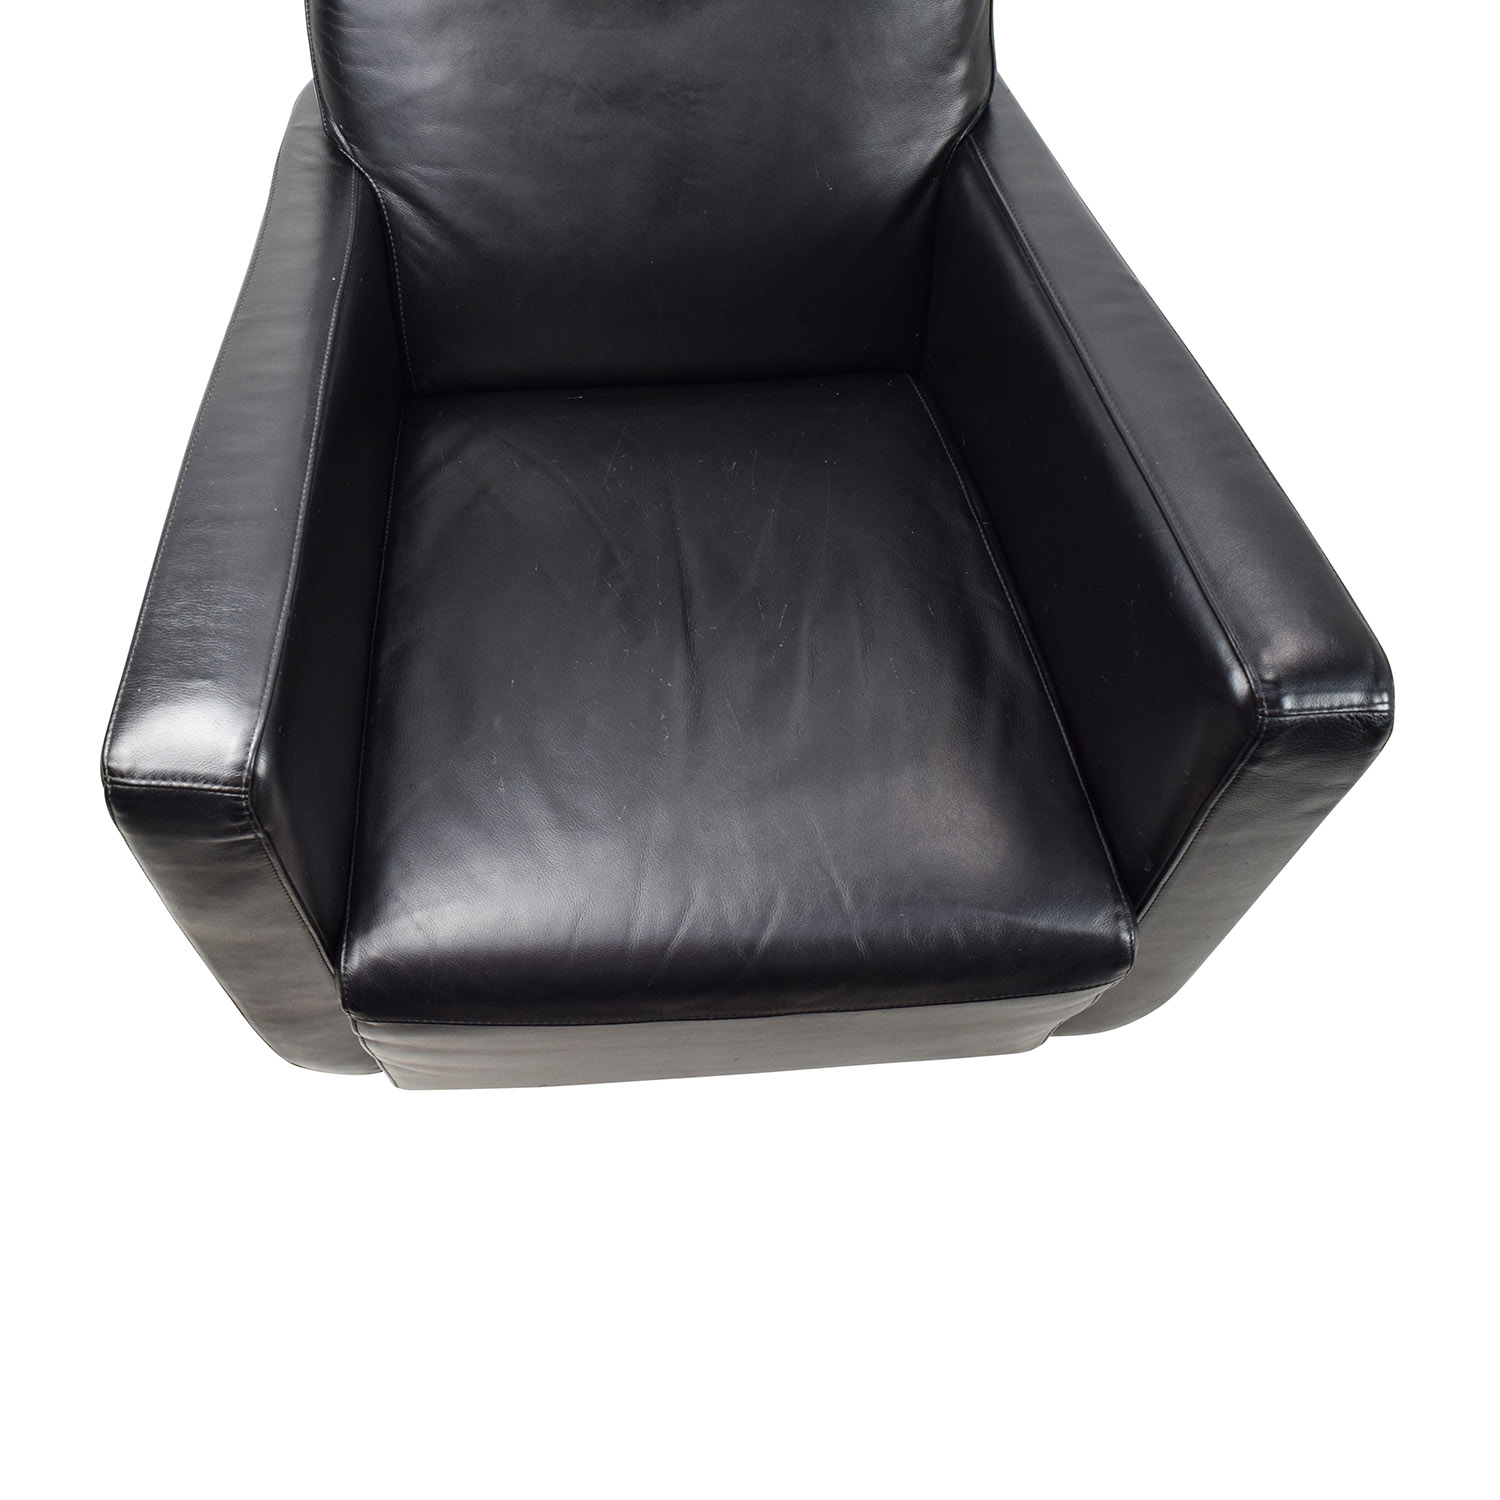 natuzzi swivel chair desk that leans back 90 off black leather with